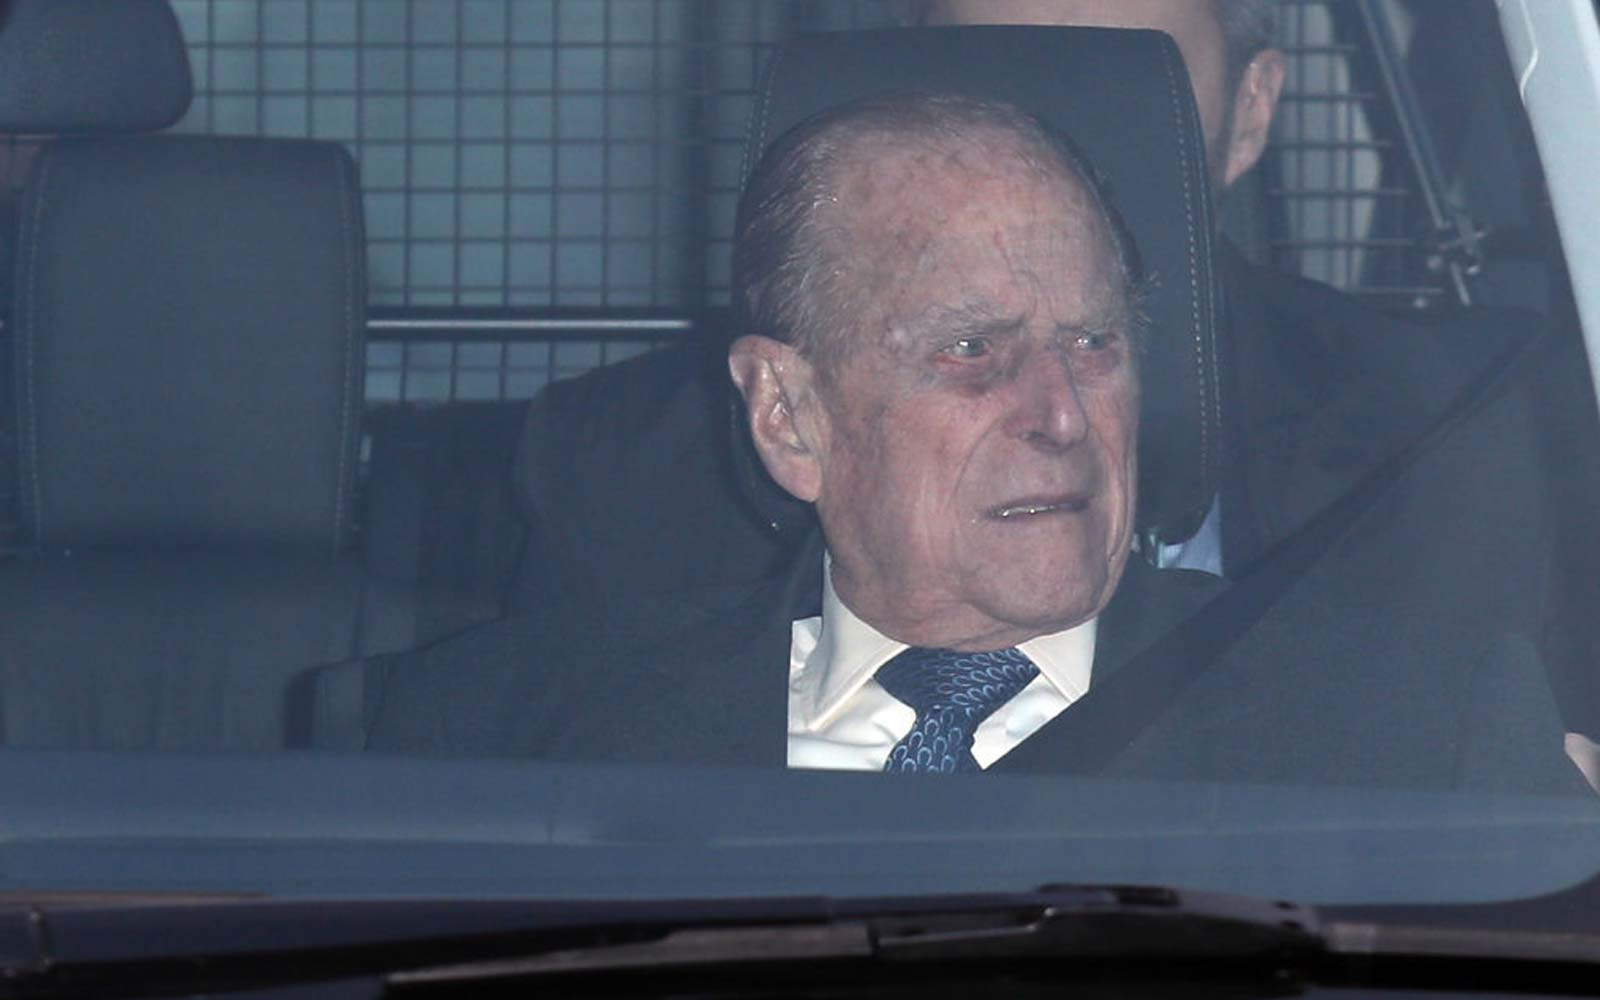 Prince Philip's Car Crash Involved a 28-year-old Woman and a 9-month-old Baby